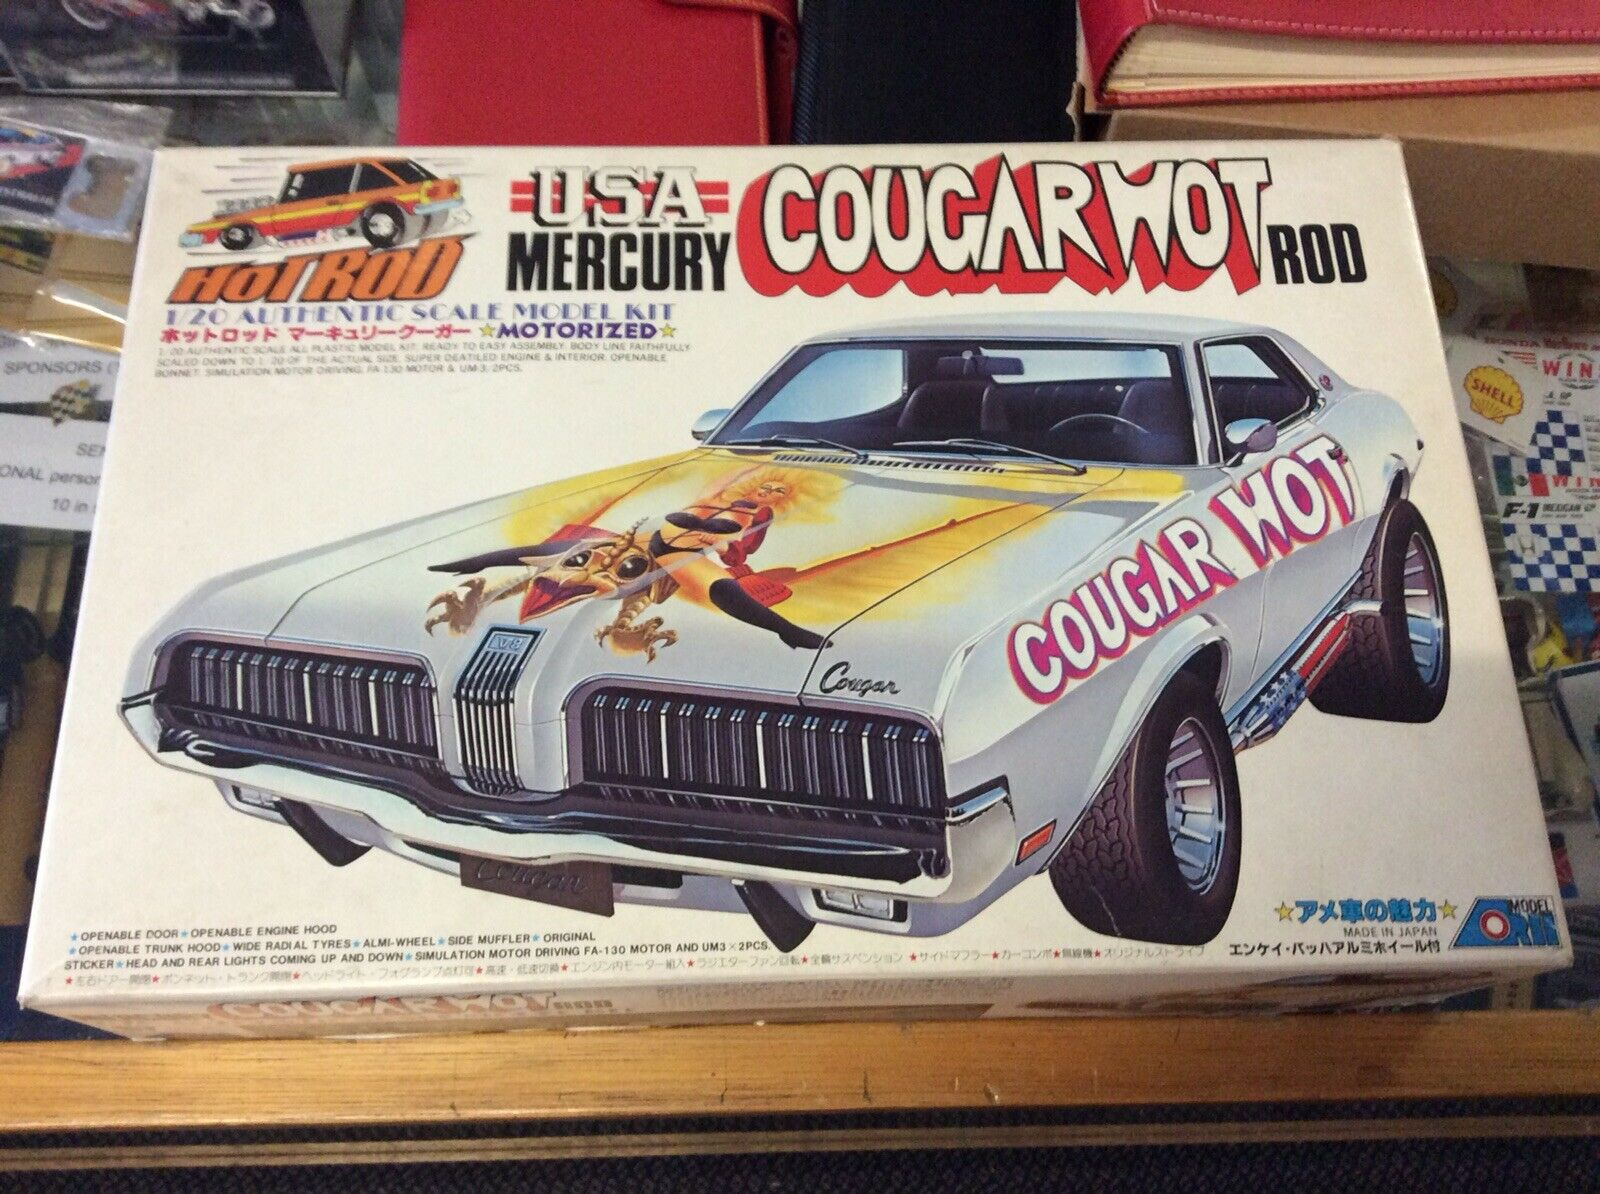 USA MERCURY VINTAGE COUGAR HOT ROD 1 20 MODEL KIT ARII JAPAN MINT CONDITION